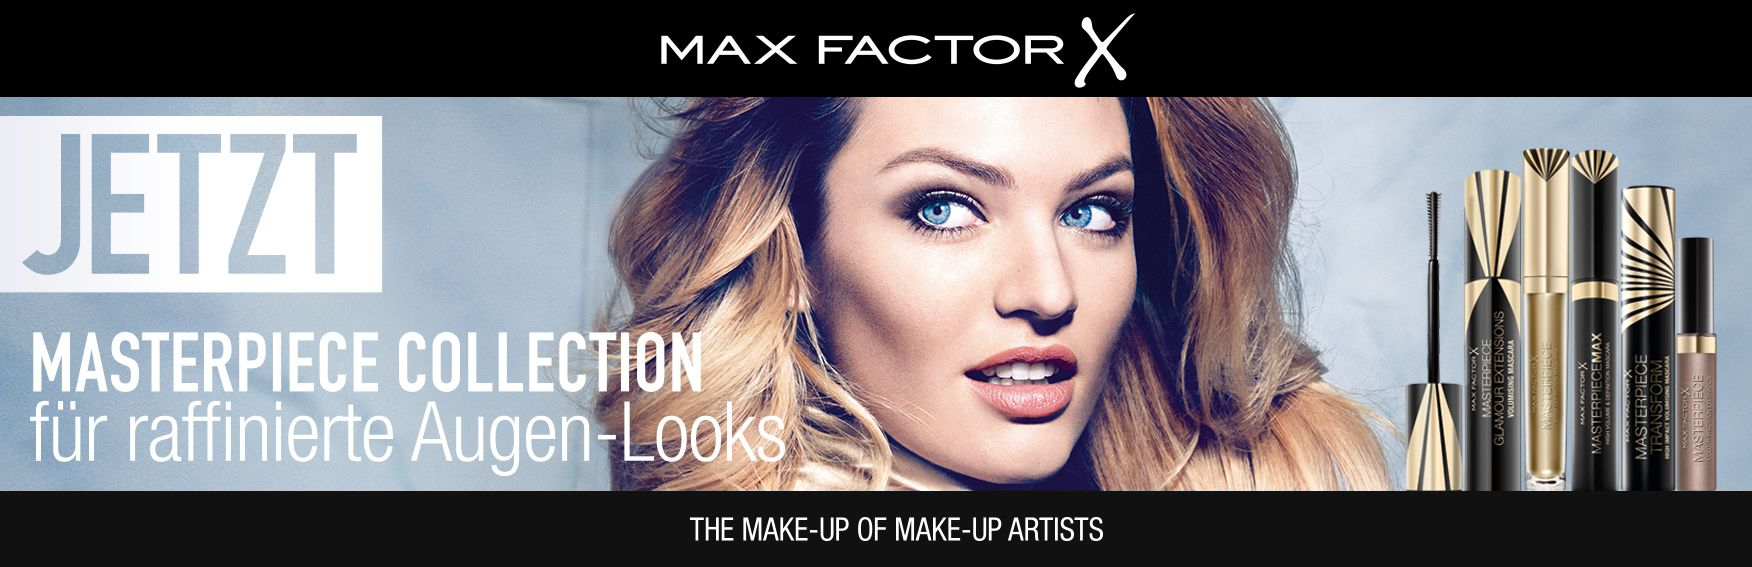 Header Max Factor Mascara